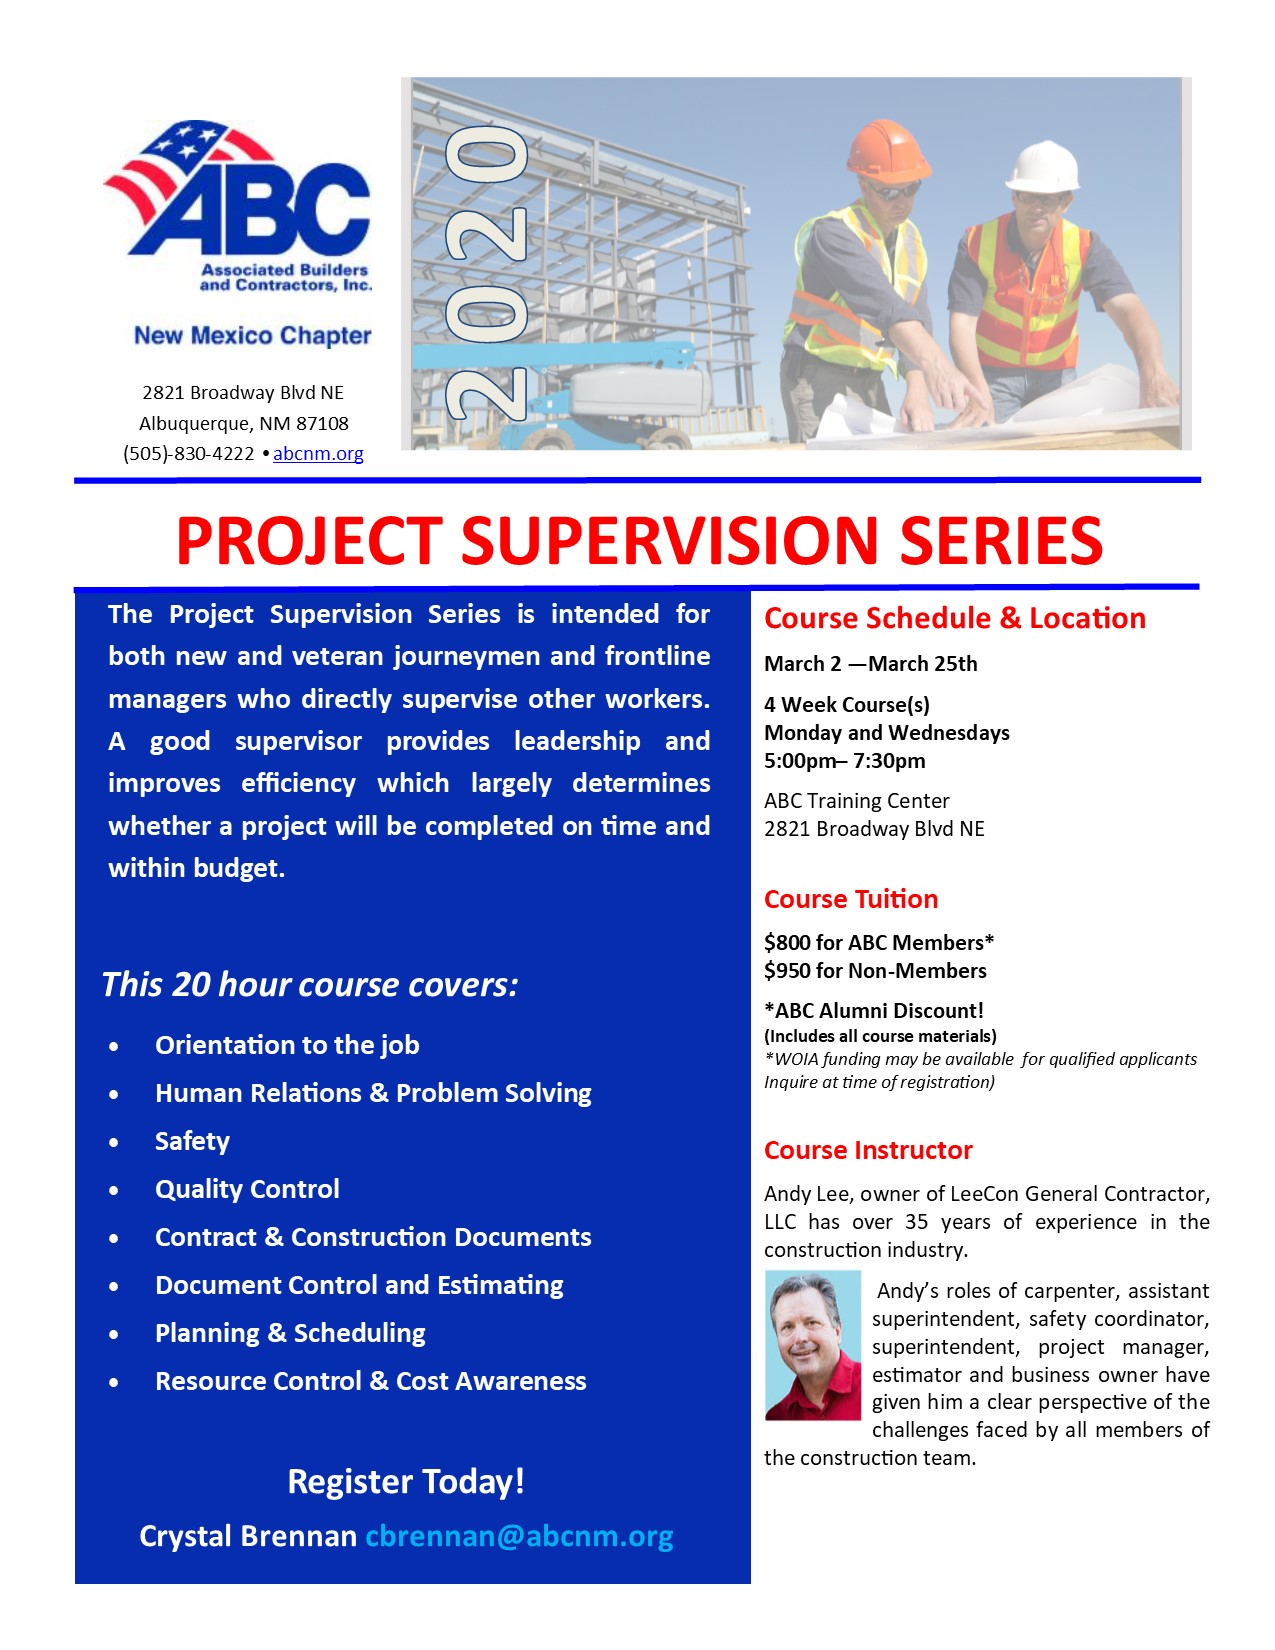 Project Supervision Series Course flyer for 2020 (1)pub